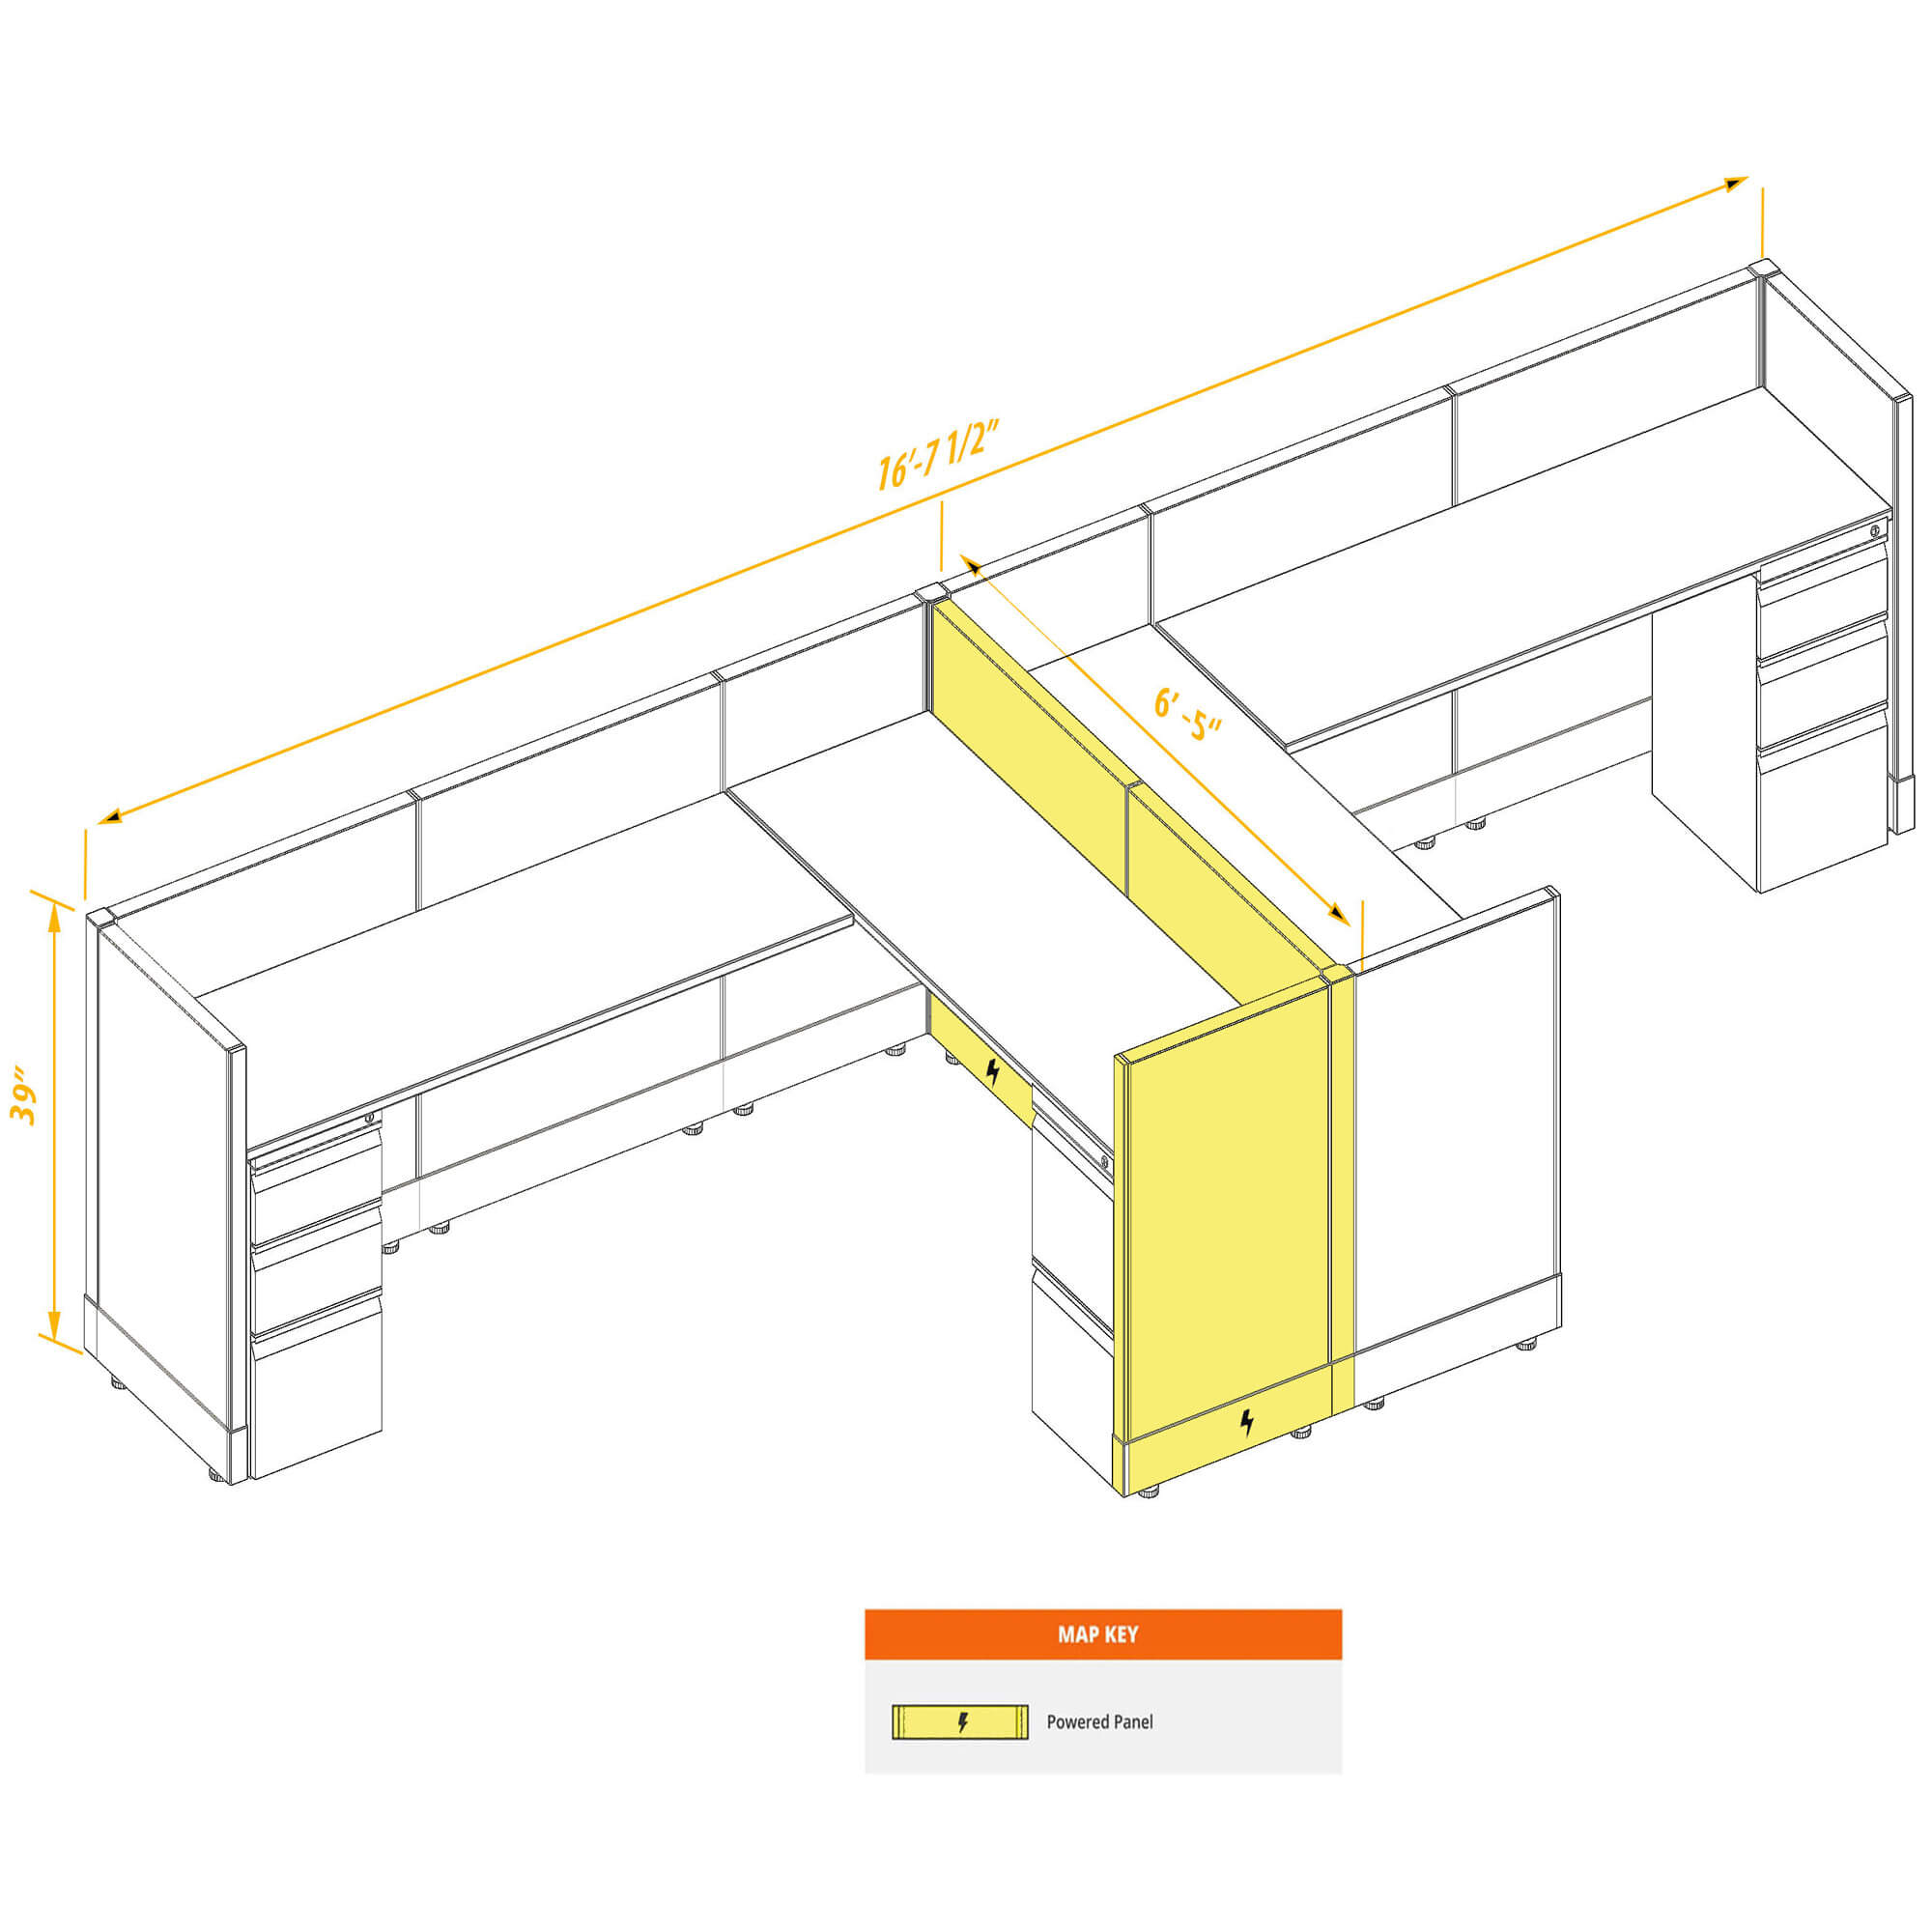 Modular furniture CUB 2a 39 P 68 PSO